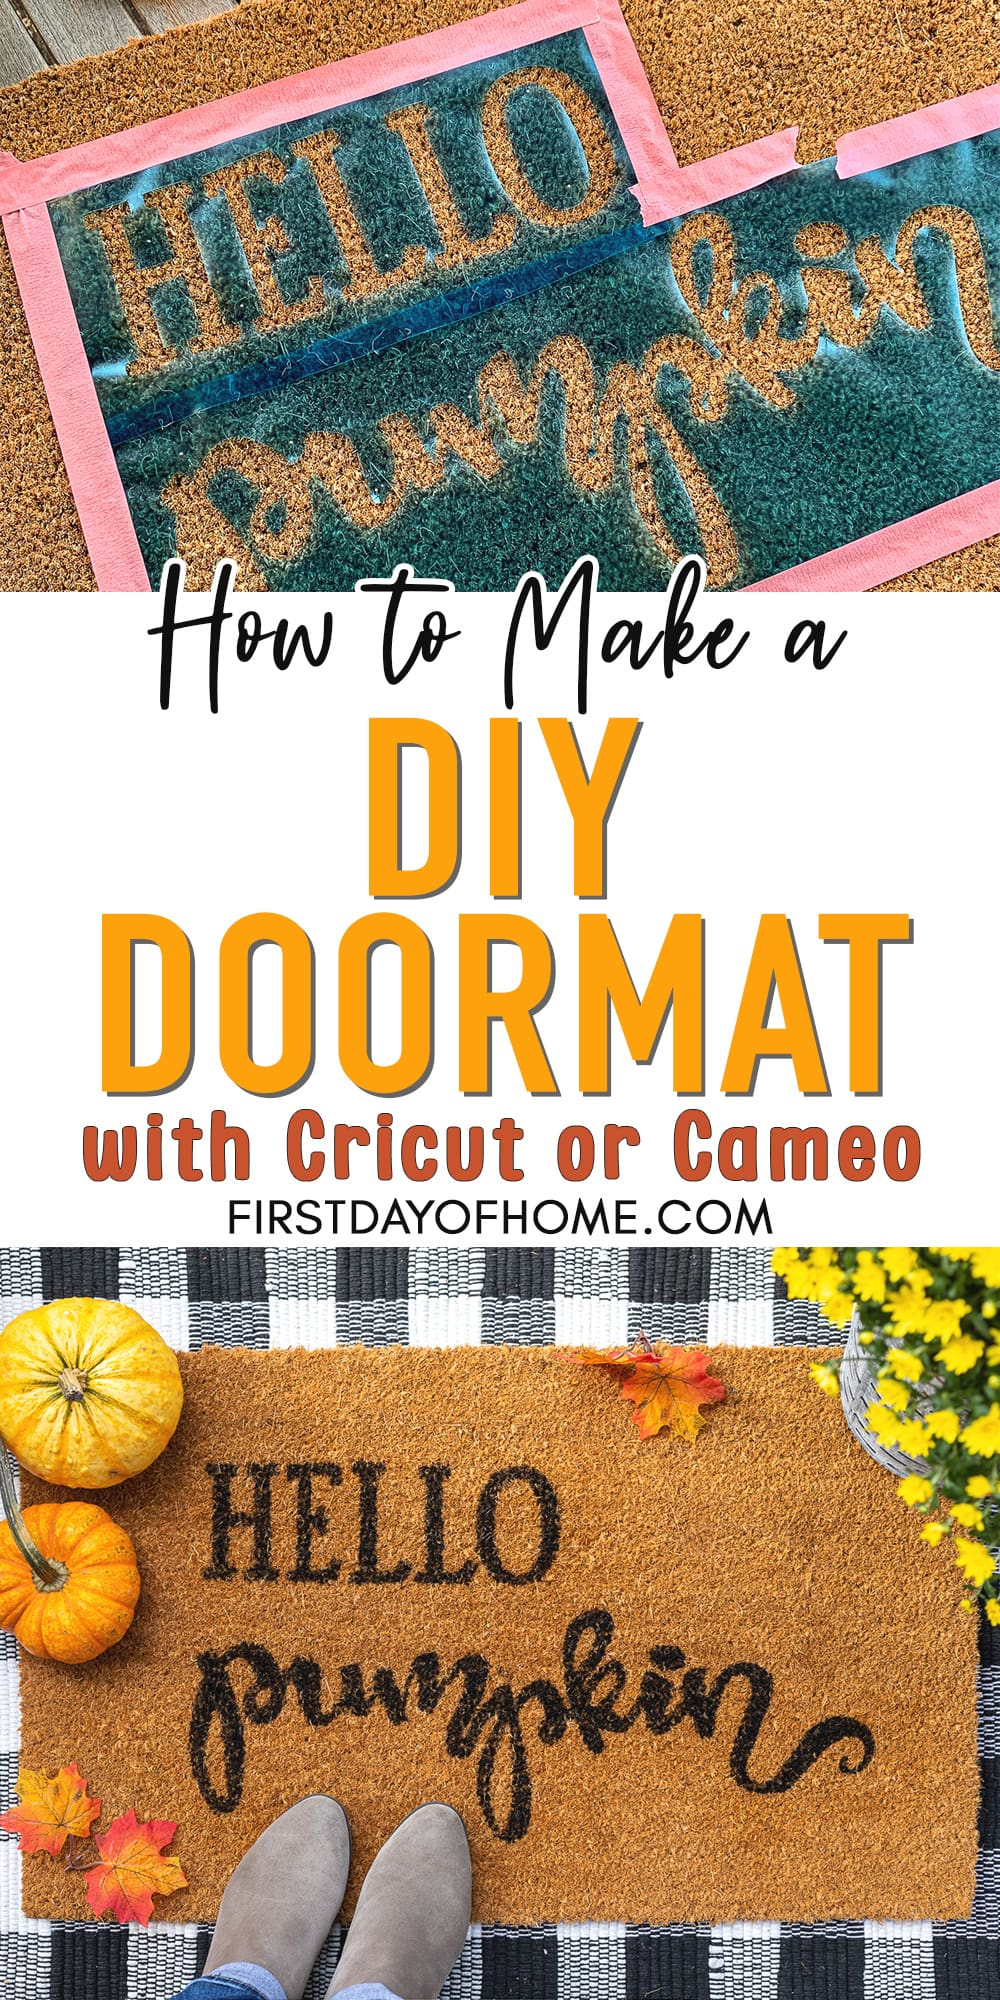 "Pin for Pinterest reading ""How to Make a DIY Doormat with Cricut or Cameo"""